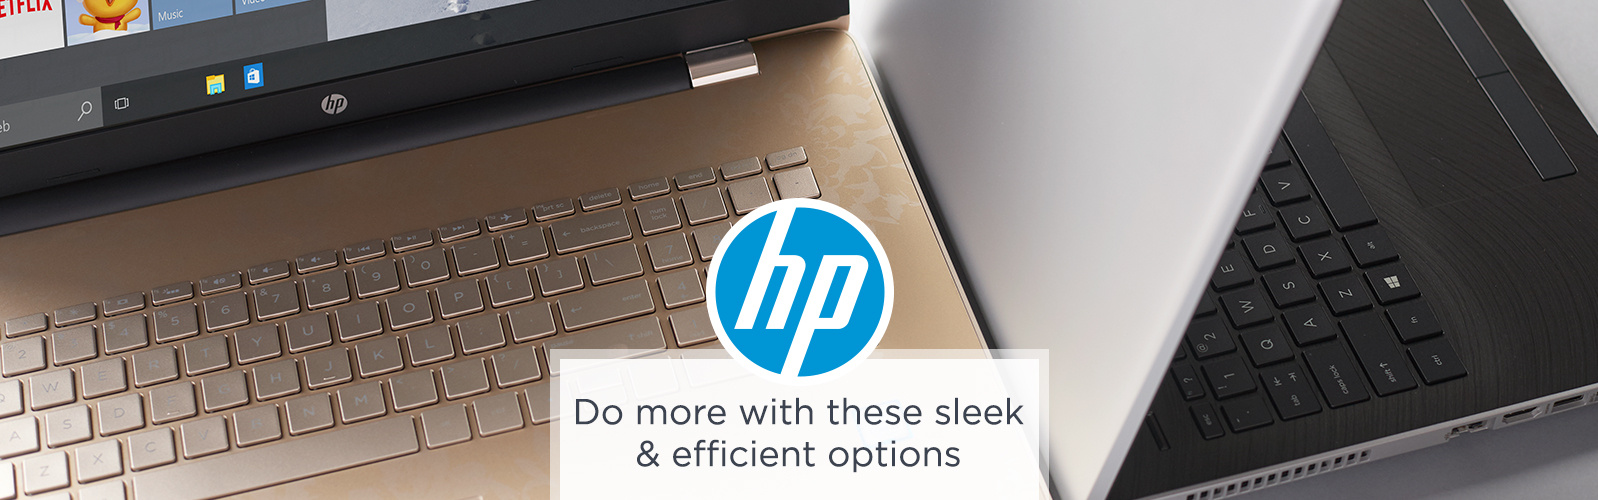 HP. Do more with these sleek & efficient options